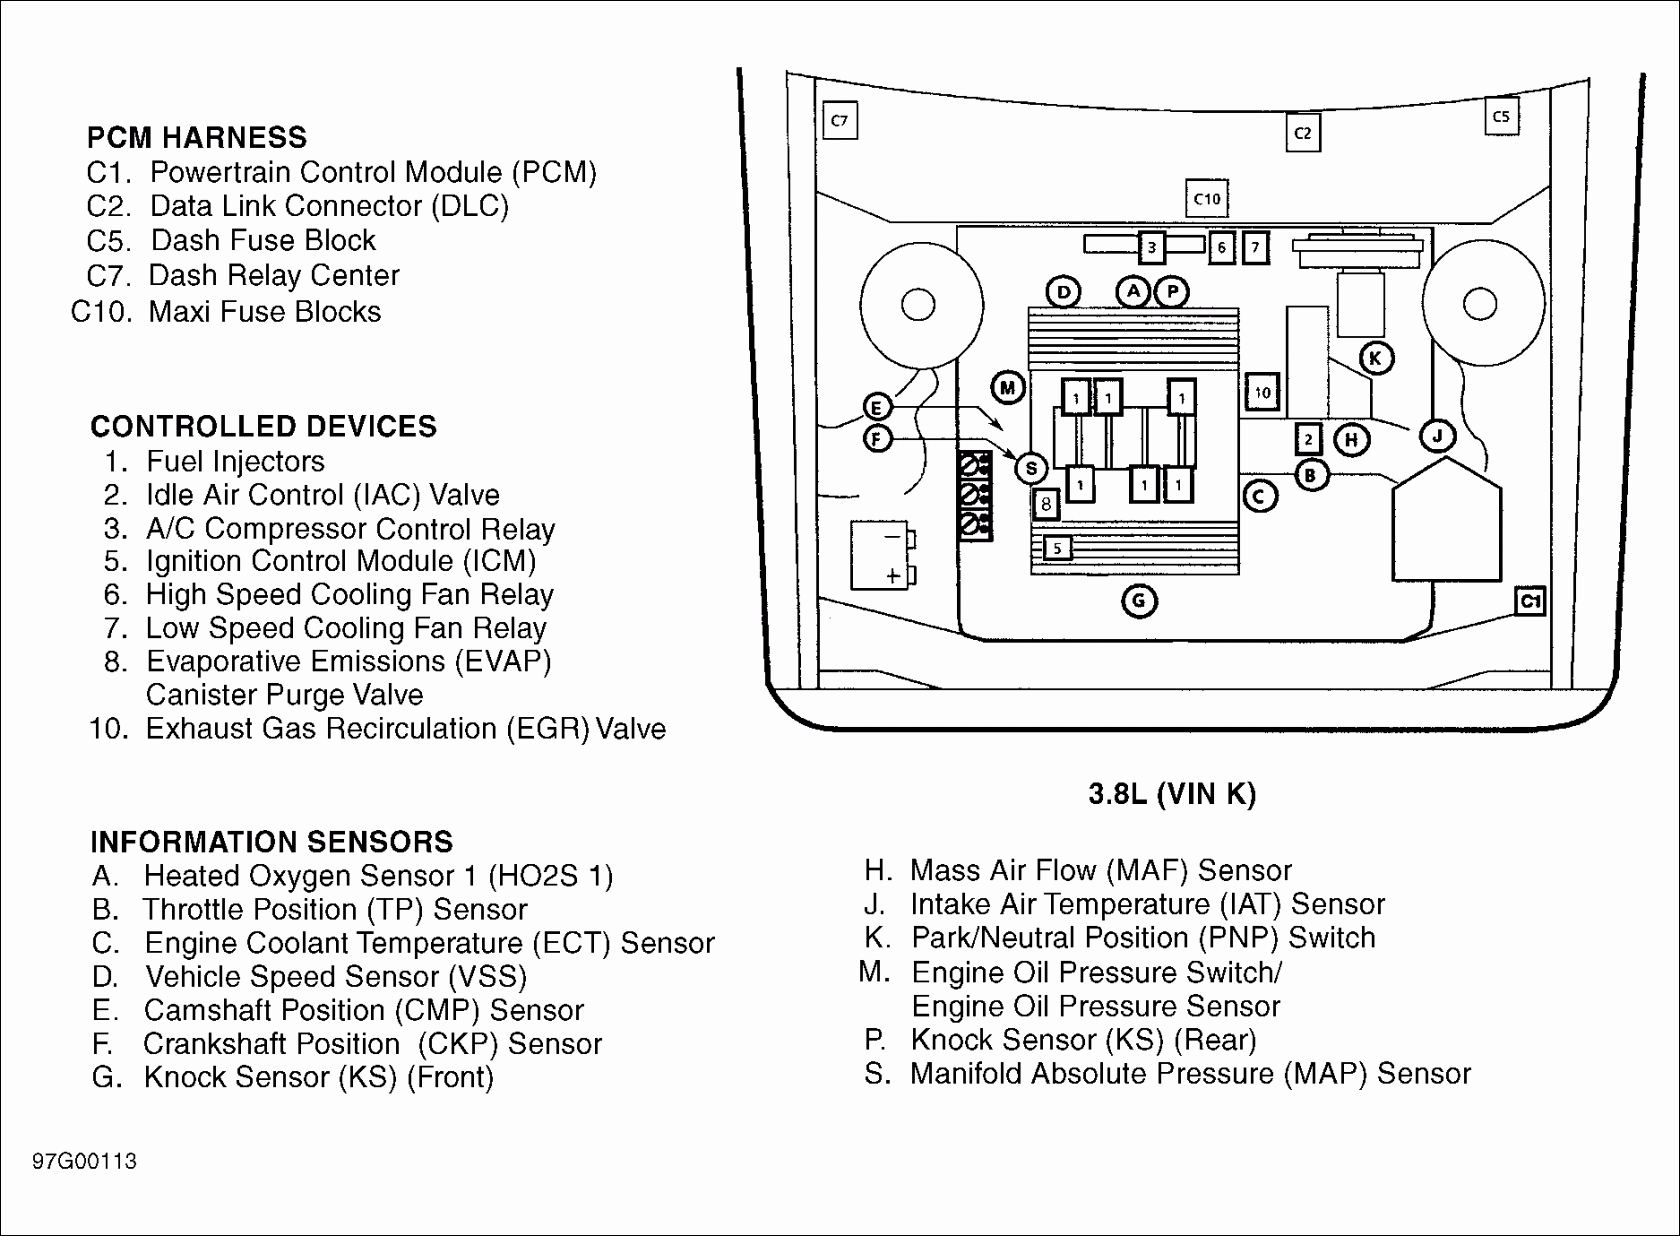 1997 buick lesabre 38l engine diagram 3 position ignition switch wiring diagram | free wiring ... #14